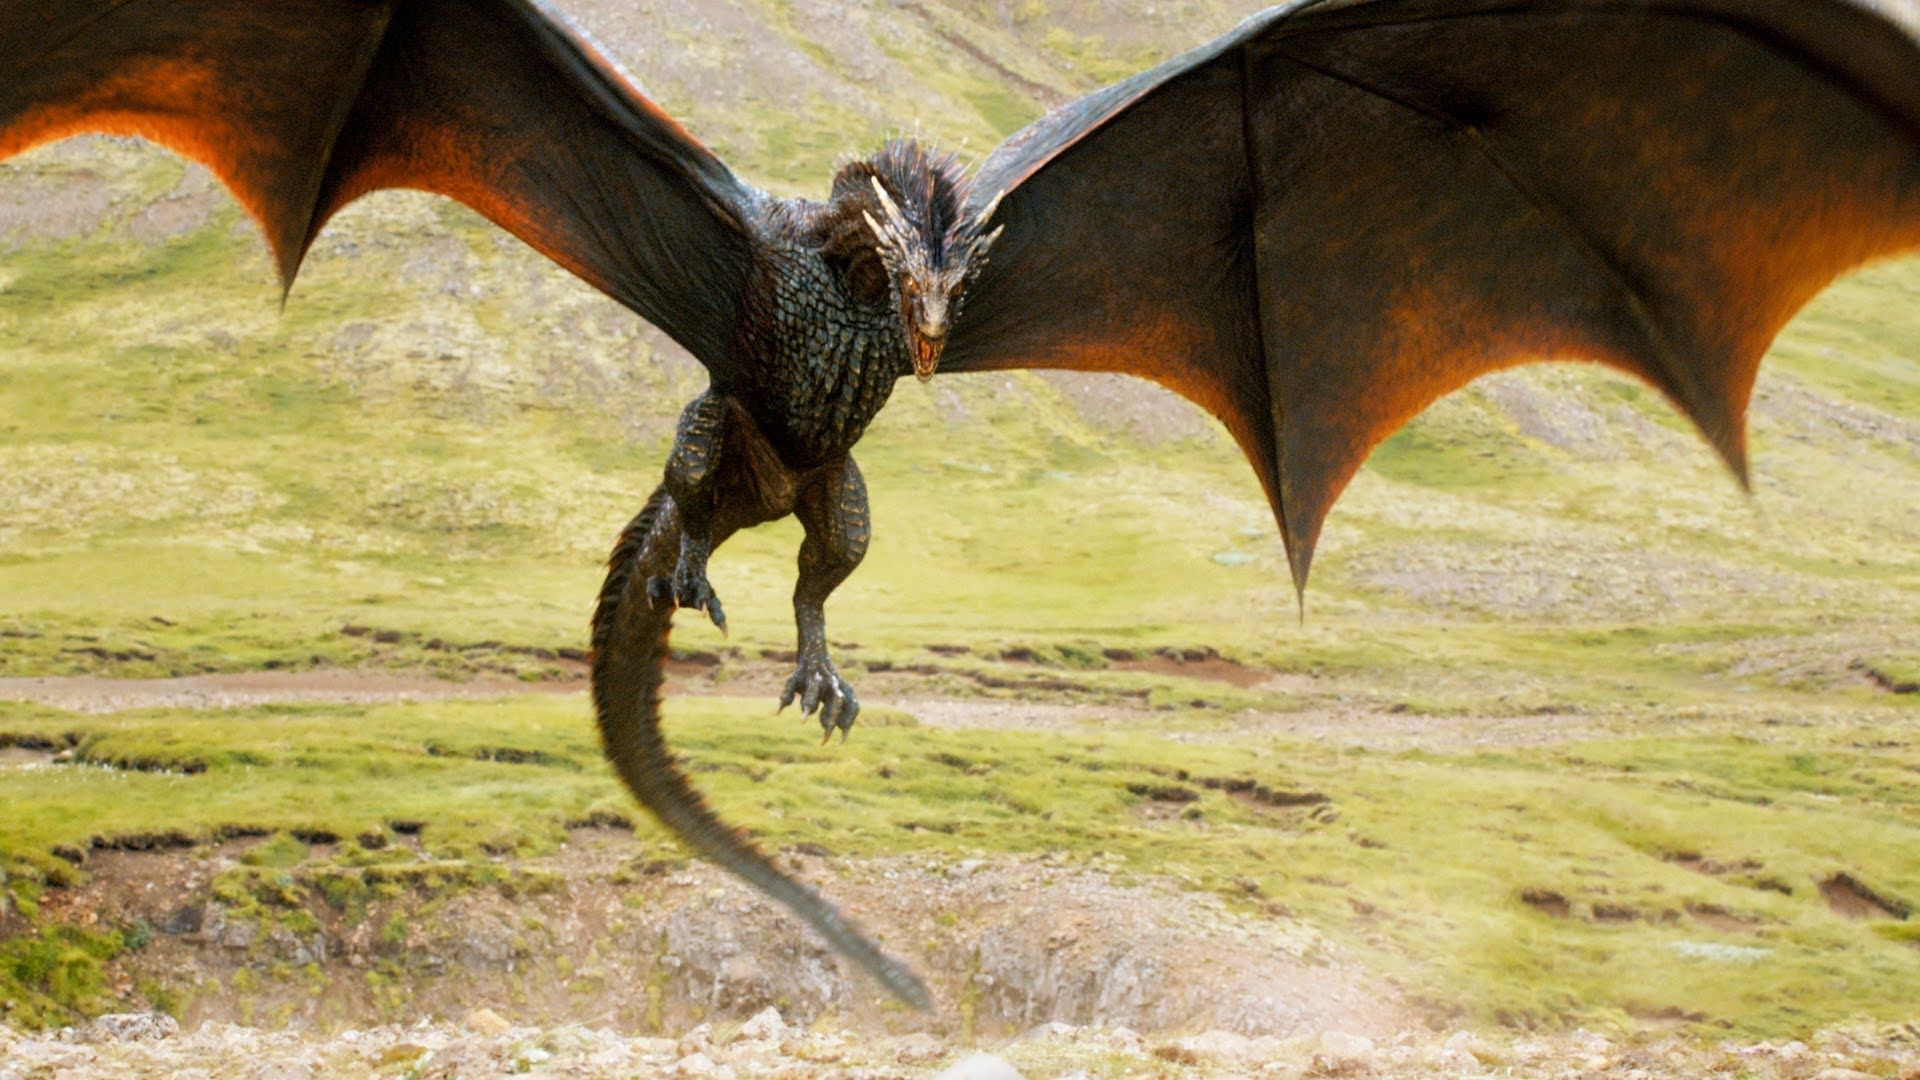 Game of Thrones Dragon Wallpaper Live Wallpaper HD